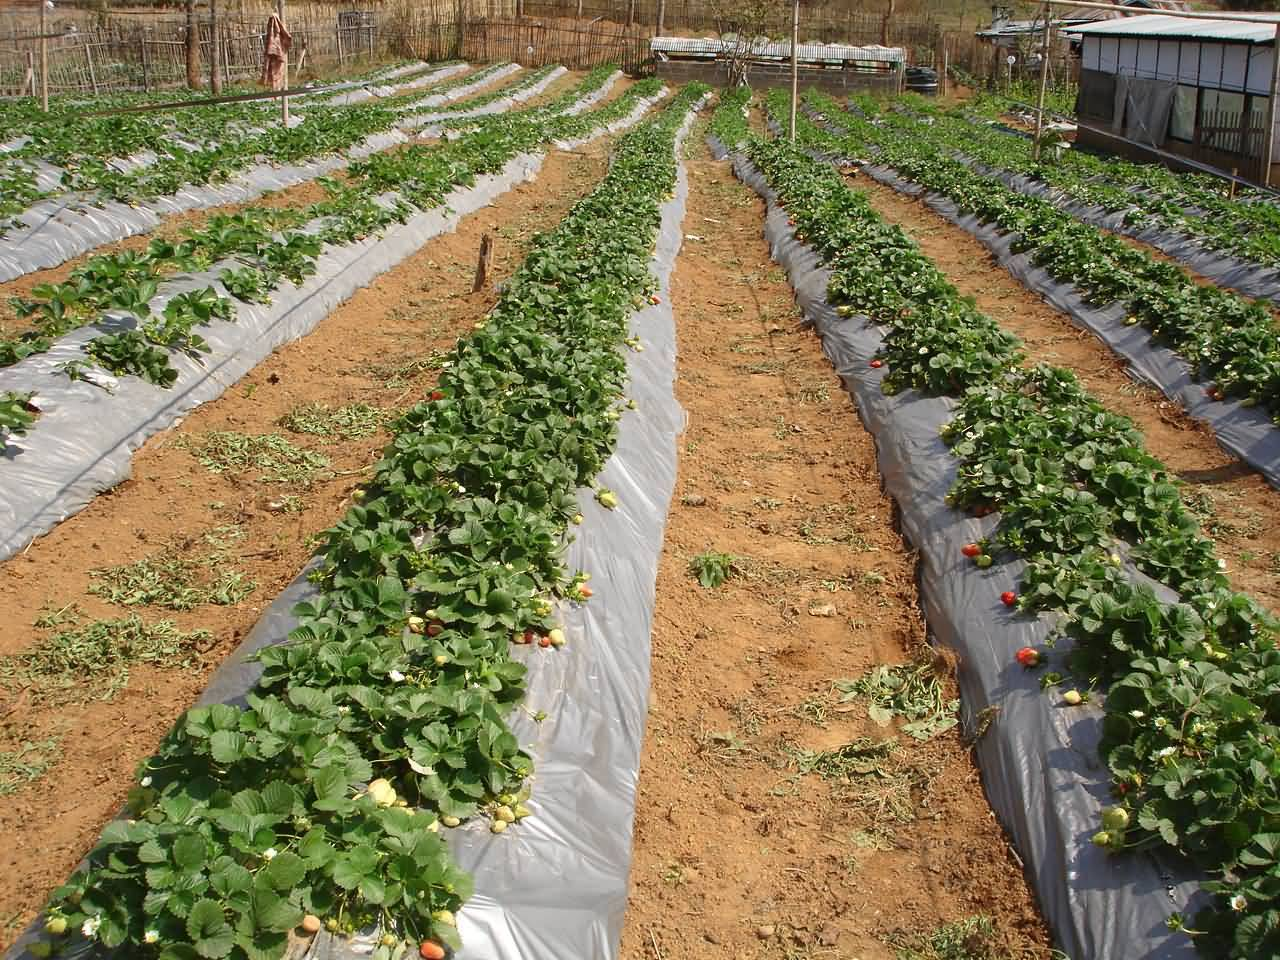 Hill row system of growing Strawberry